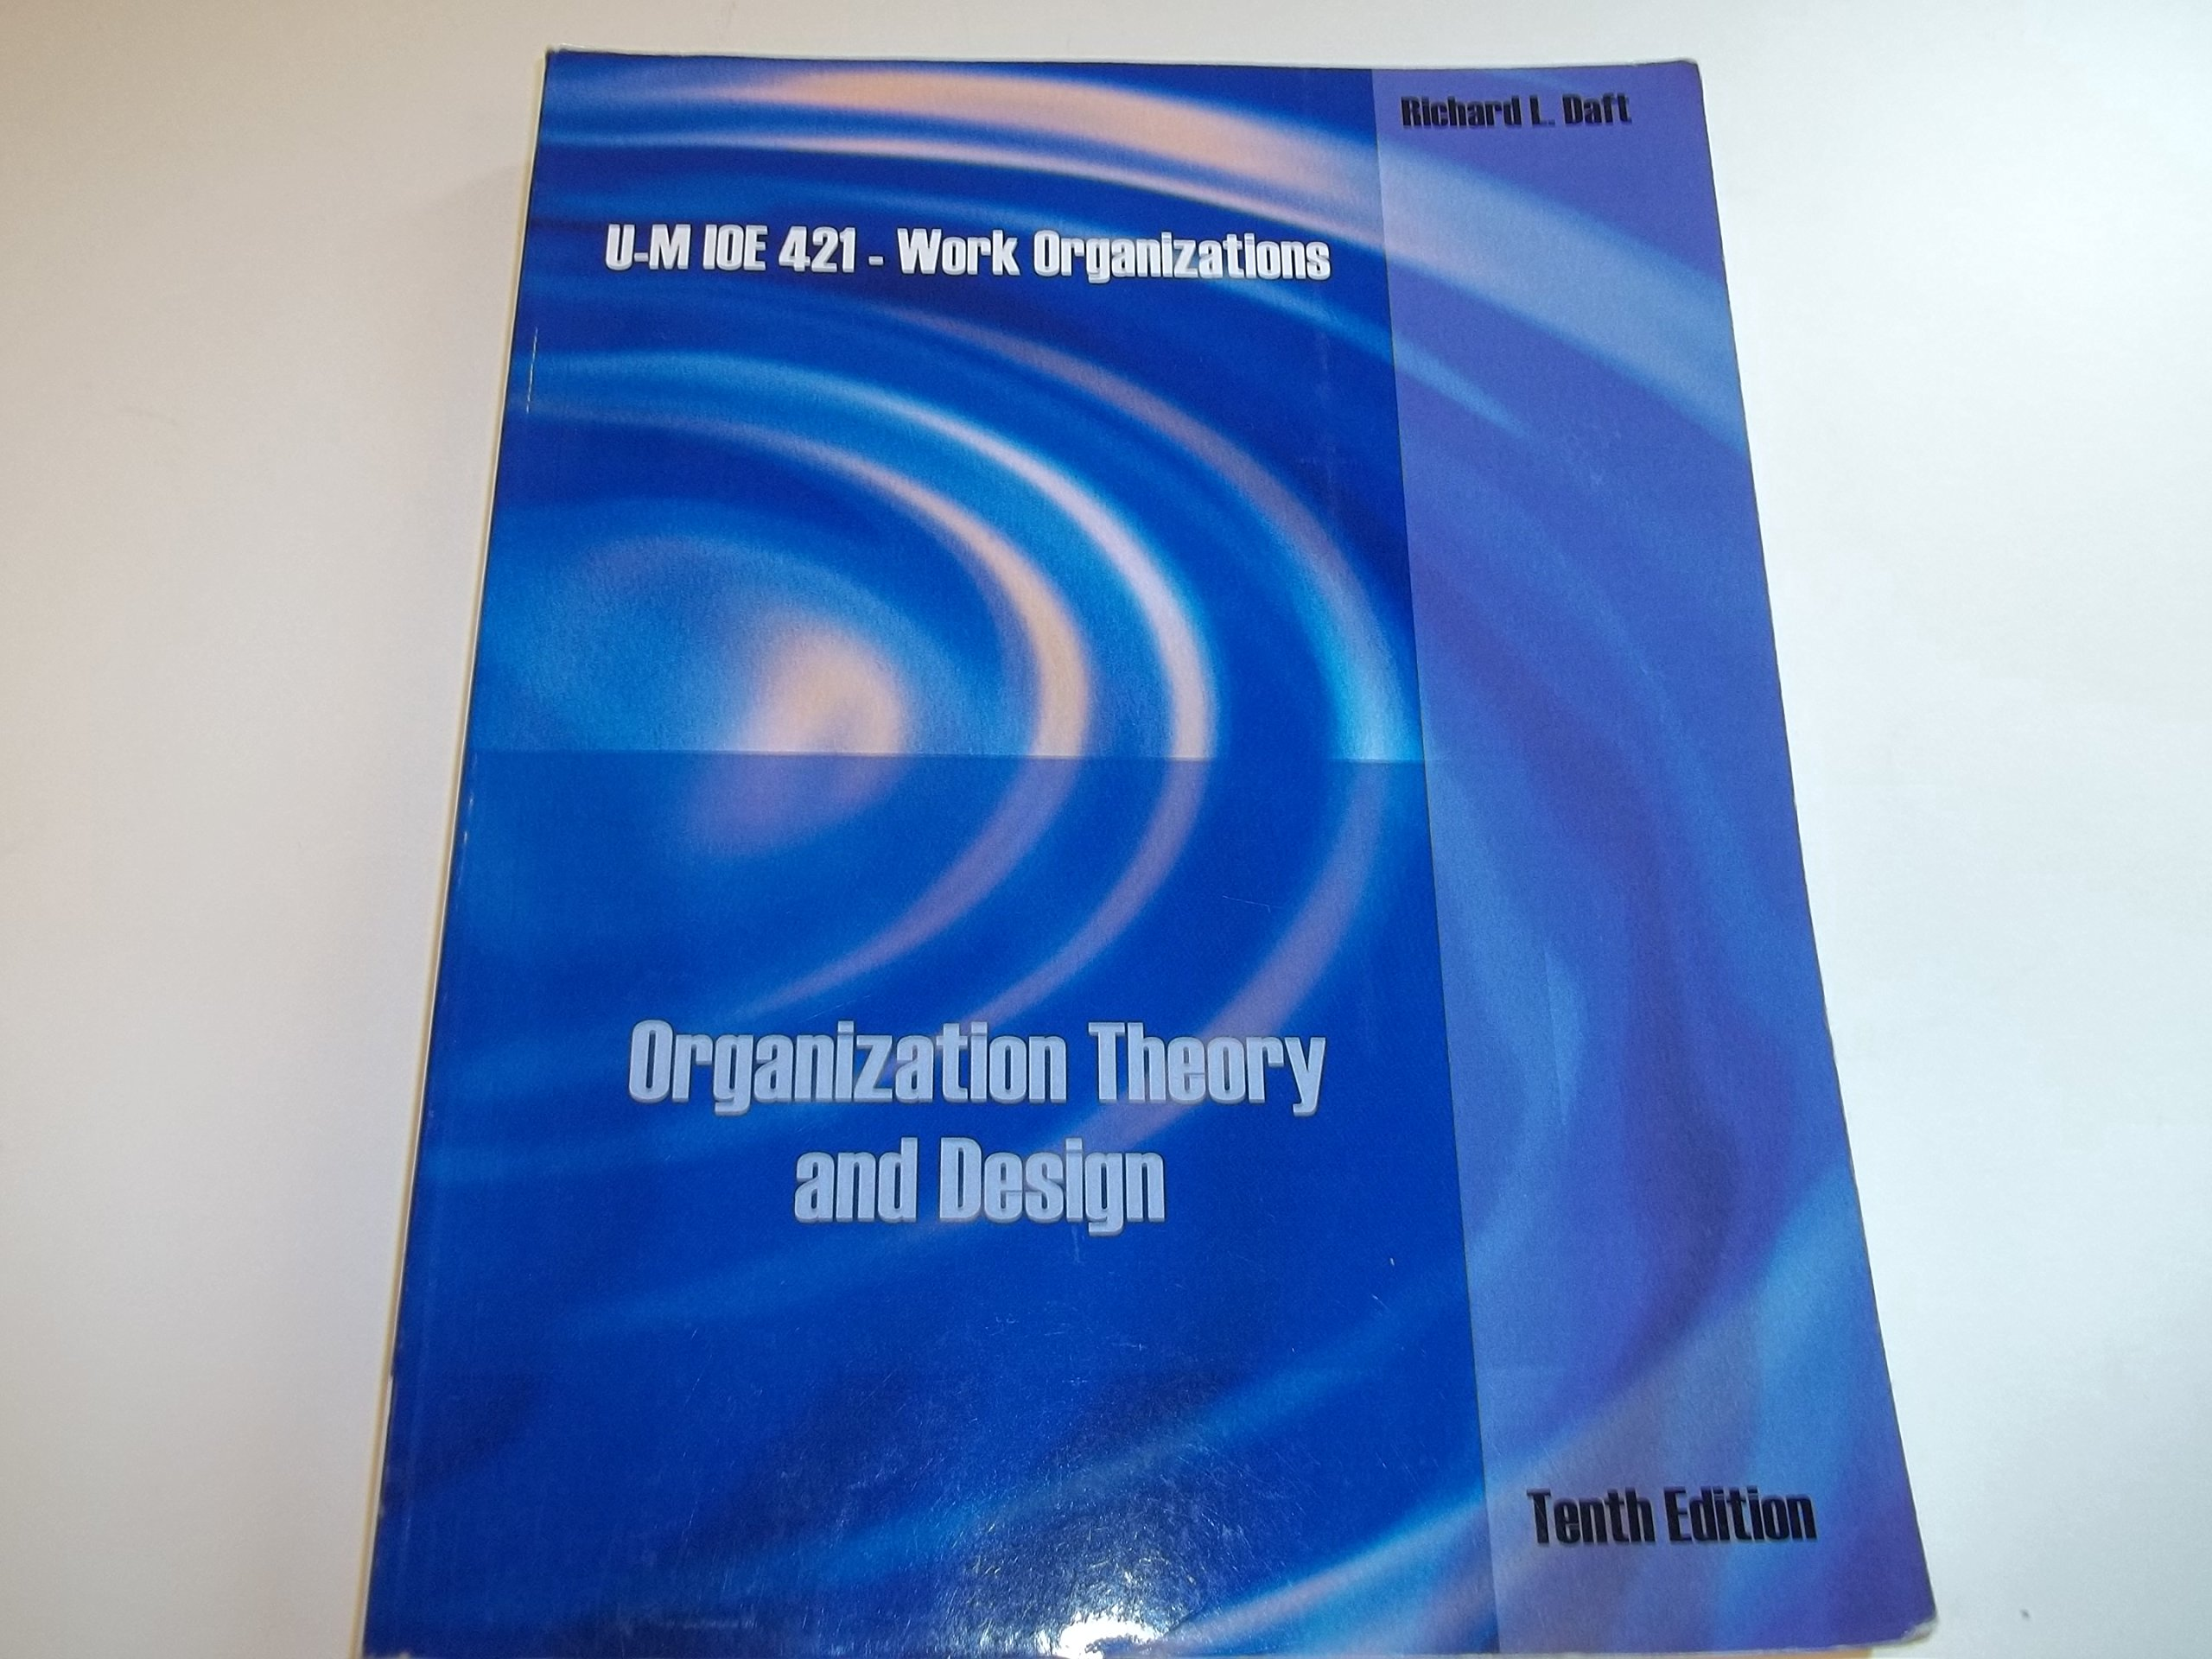 Organization Theory And Design 10th Edition U M Ioe 421 Work Organizations 9781111220853 Amazon Com Books